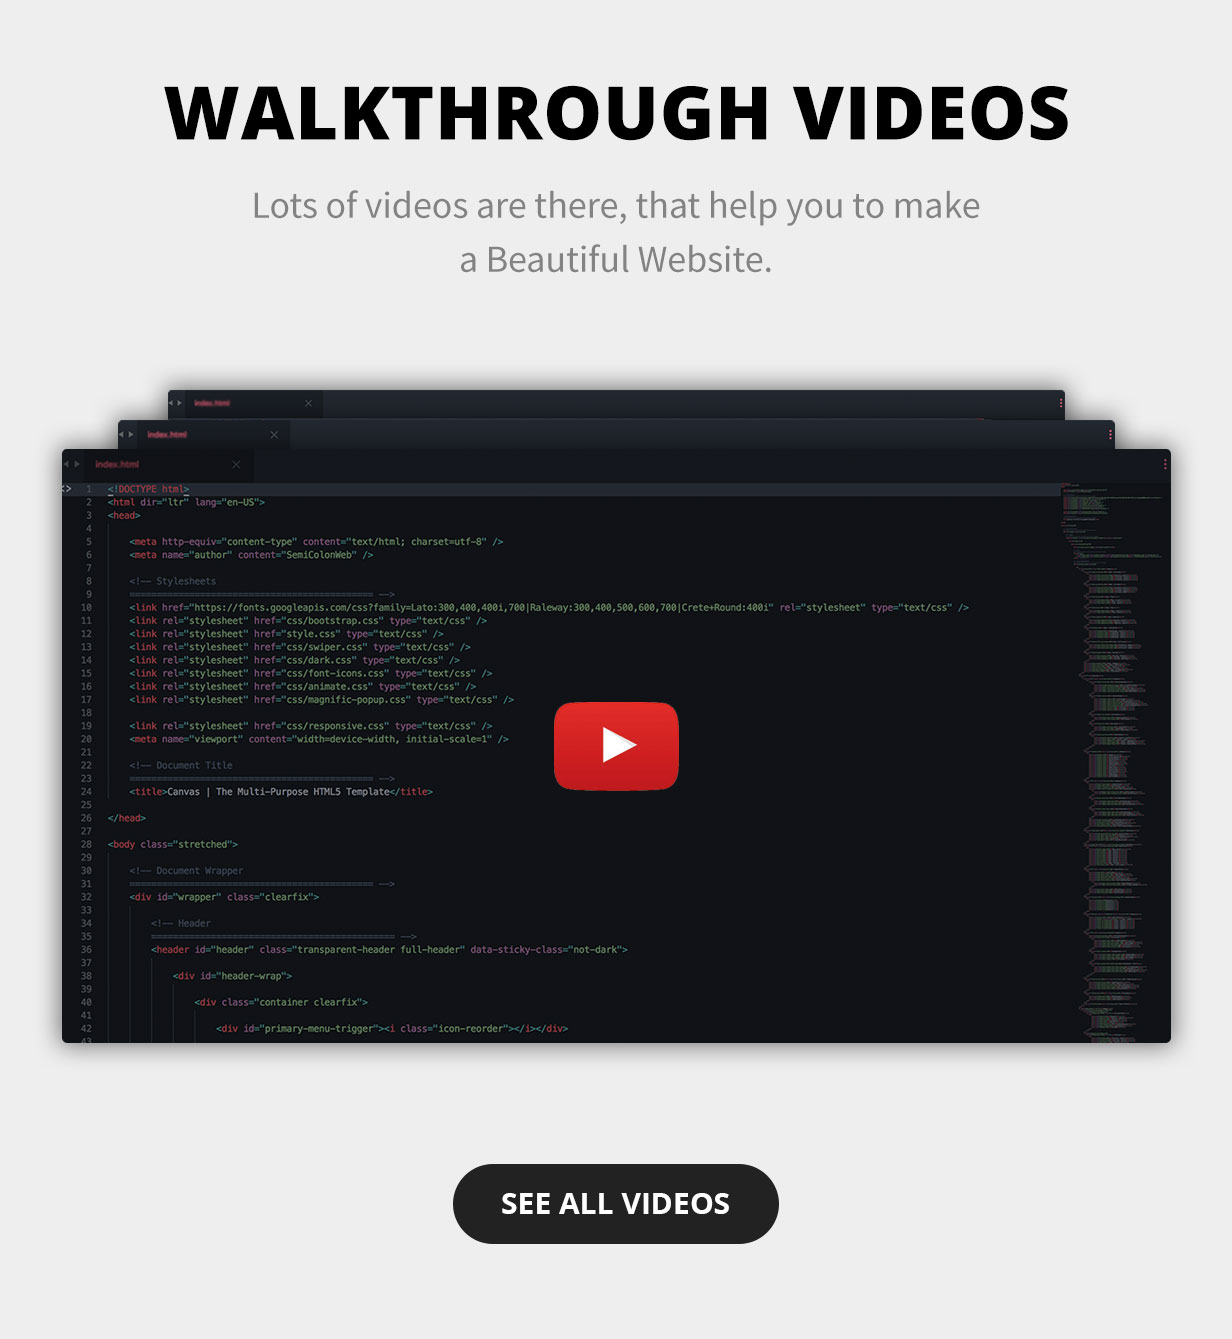 Walkthrough Videos